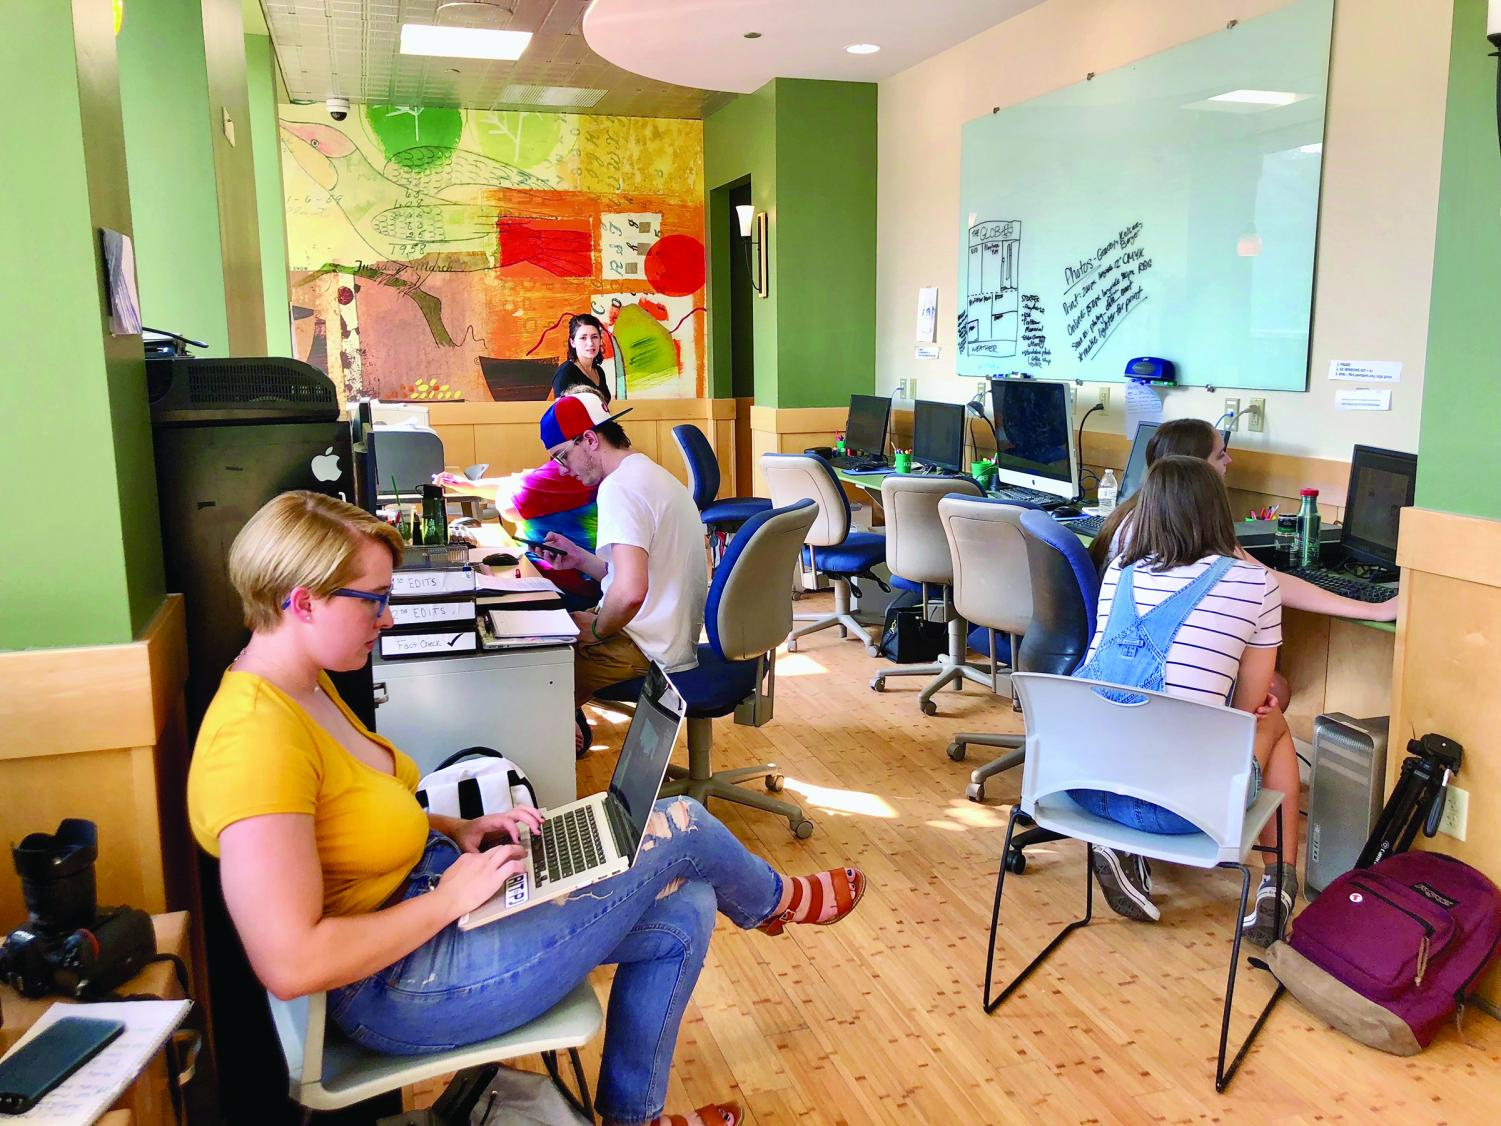 The Globe staff settles into its contemporary newsroom. The new offices, combined with the WPPJ studios, represent a new era for Point Park media.